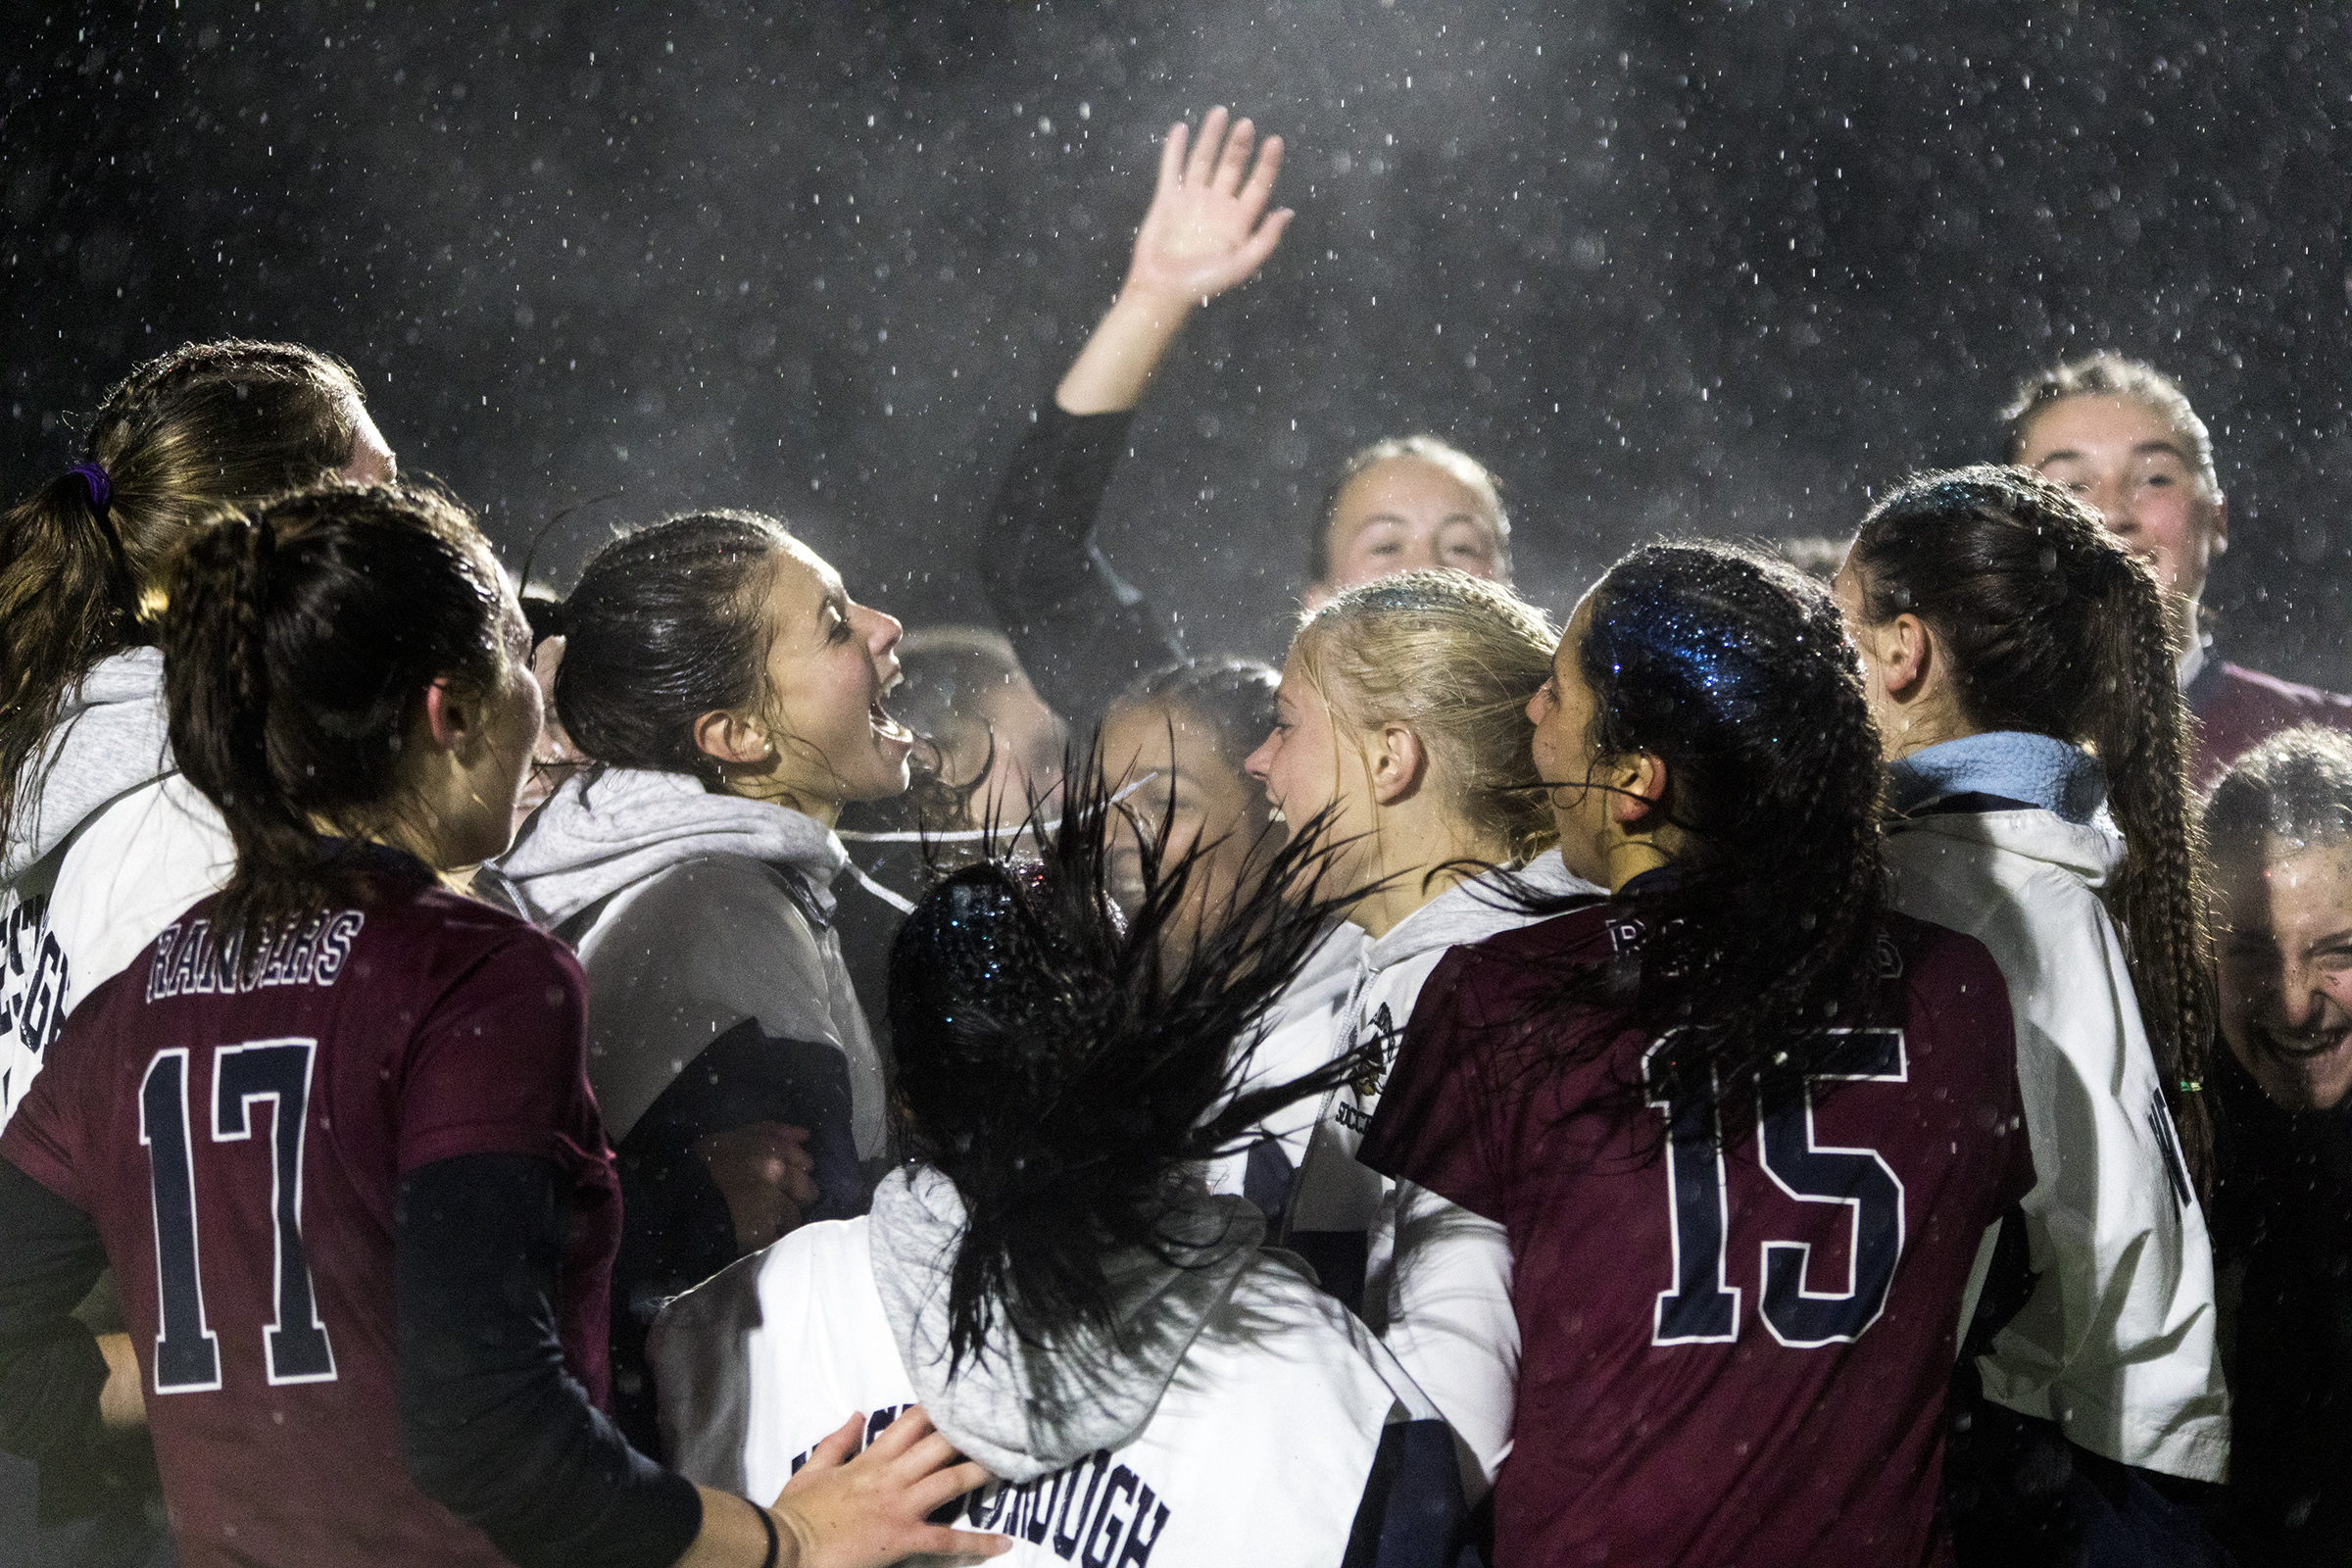 Westborough players celebrate winning in overtime, , 2-1, during the Division 1 Central quarterfinal game against Algonqin in Westborough on Nov. 5, 2018.